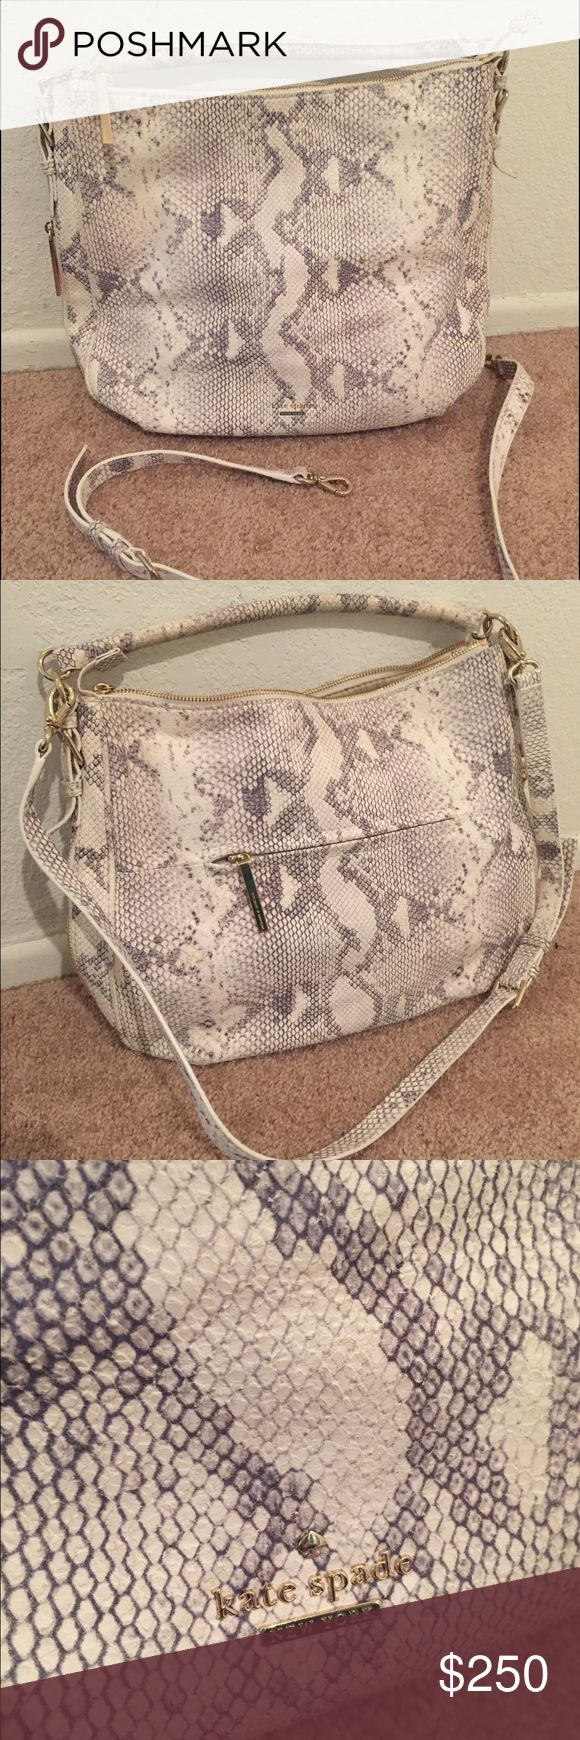 Kate Spade Cobble Hill Luxe Ella Snakeskin Print Kate Spade Cobble Hill Luxe Ella Snakeskin print Cross body handbag  Great Condition! Used only once.  Color: Cream and Grey Snakeskin print Style: #: PXRU5695 Zipper top, 1 zipper poker outside, 1 zipper and 2 pockets inside interior slide pockets Measurements Approx: 12 in  H X 15 in W X 2 3 in D.  Strap drop length: Adjustable Strap kate spade Bags Shoulder Bags